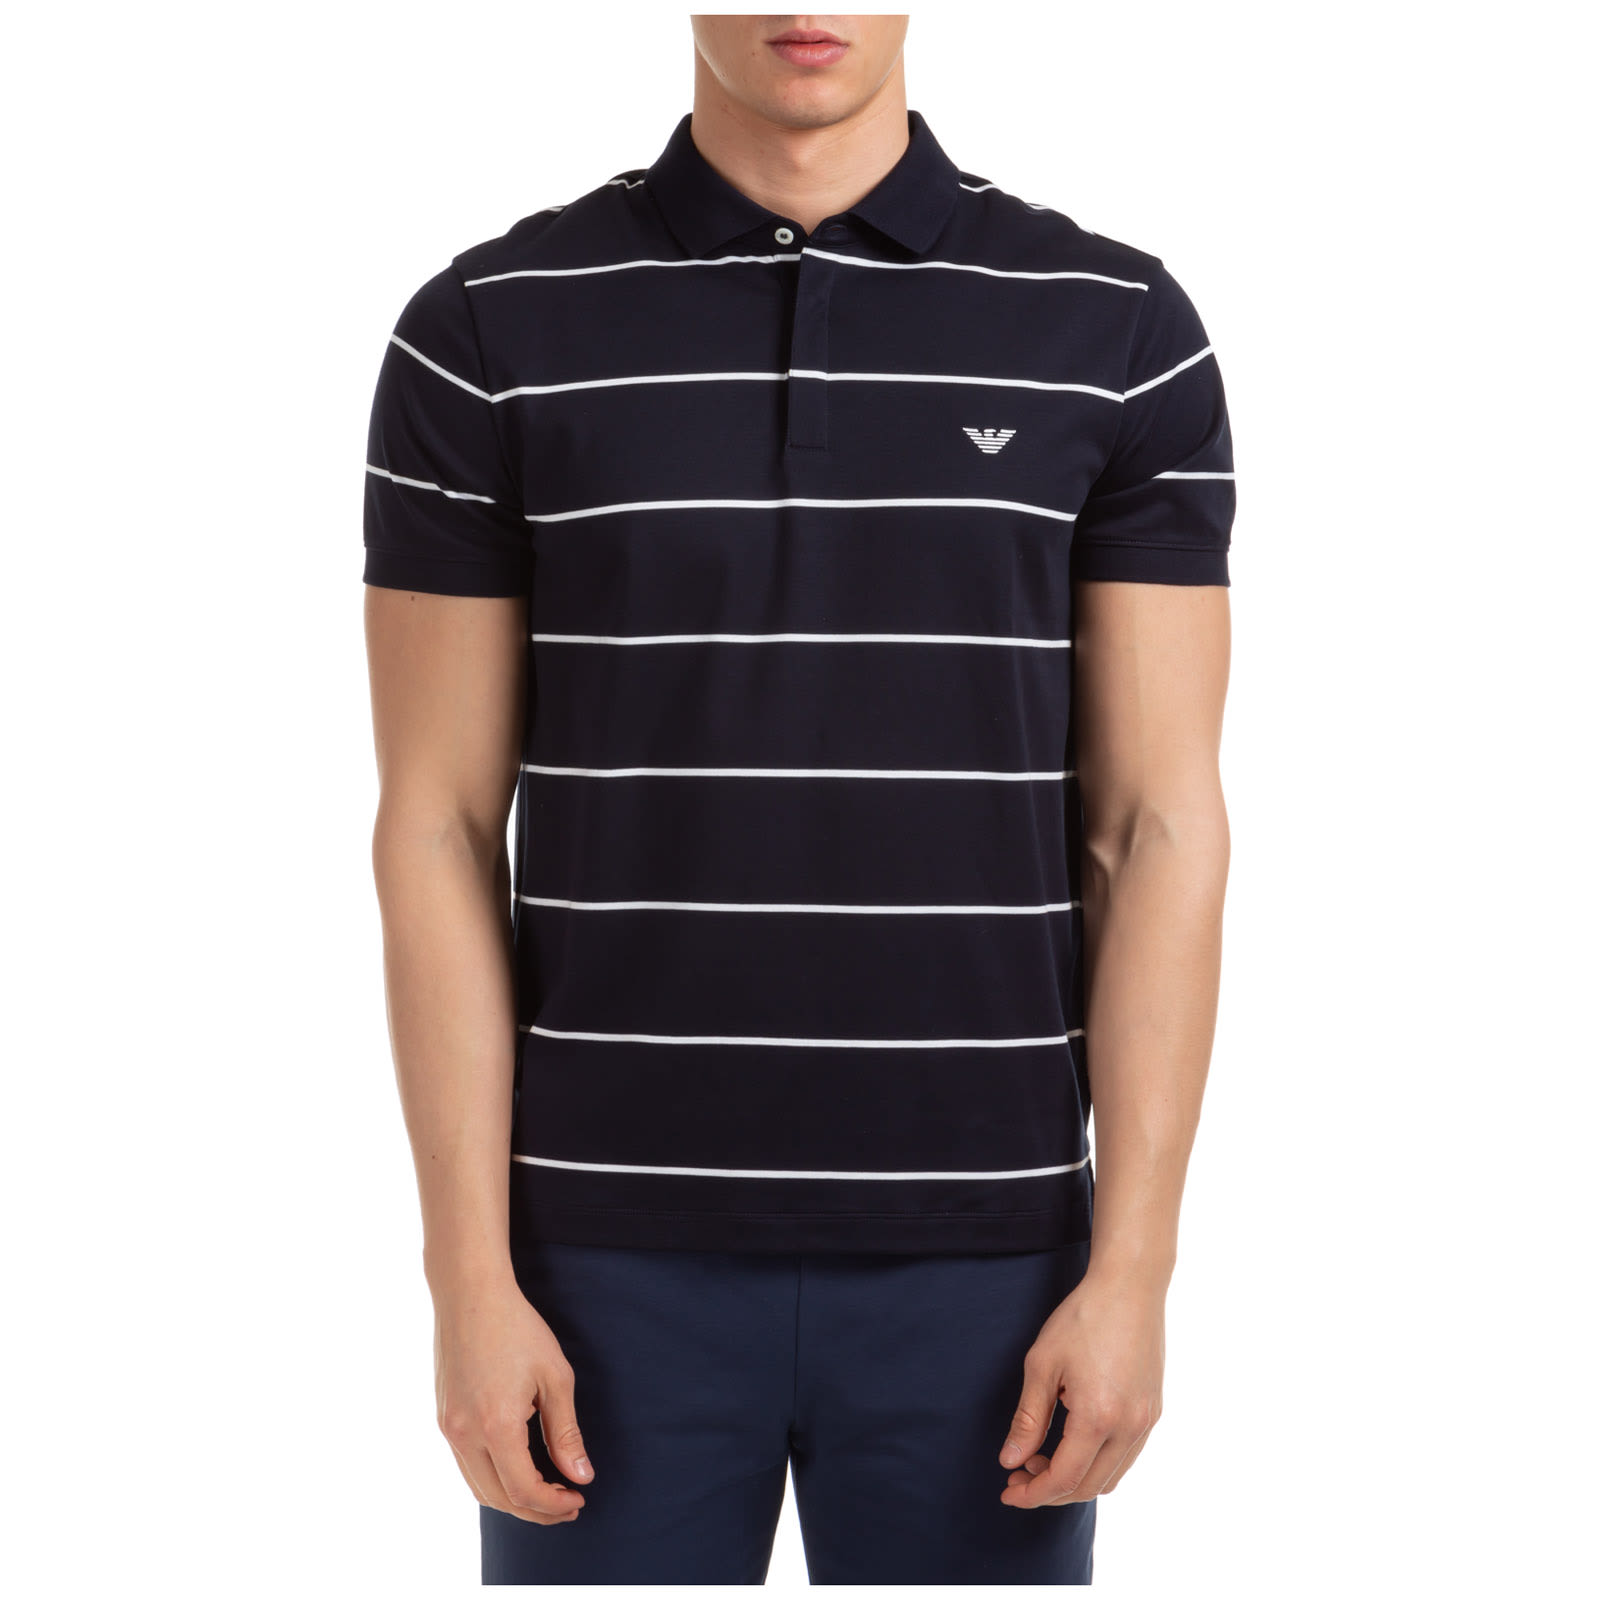 Emporio Armani Pillona Polo Shirts In Riga Grande